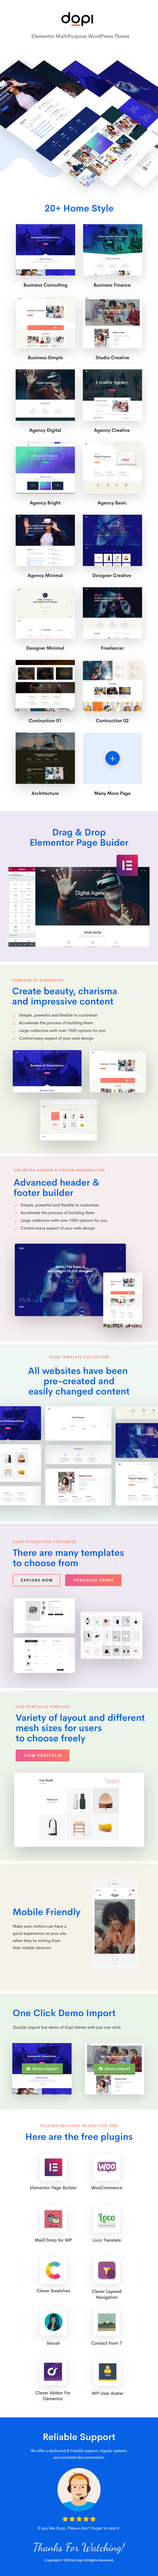 Dopi - Elementor MultiPurpose WordPress Theme - 3